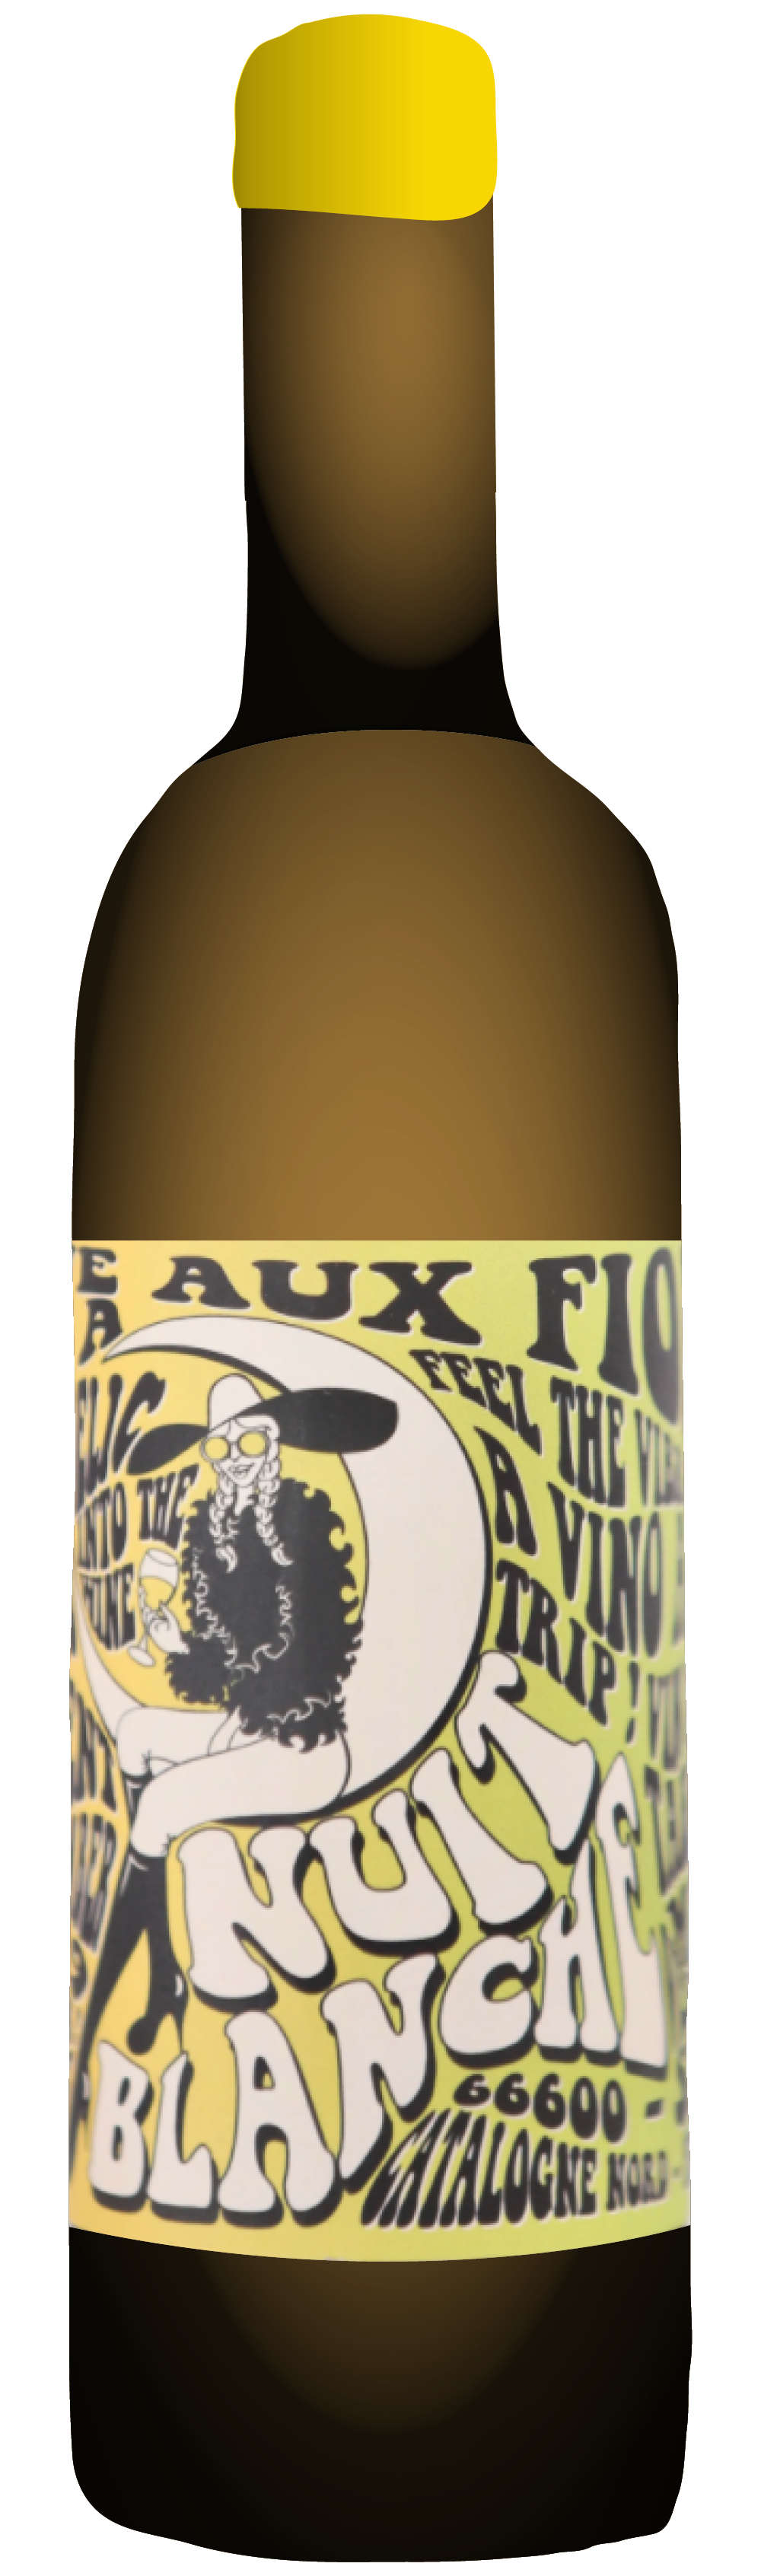 the natural wine company club january 2021 france la cave aux folies nuit blanche